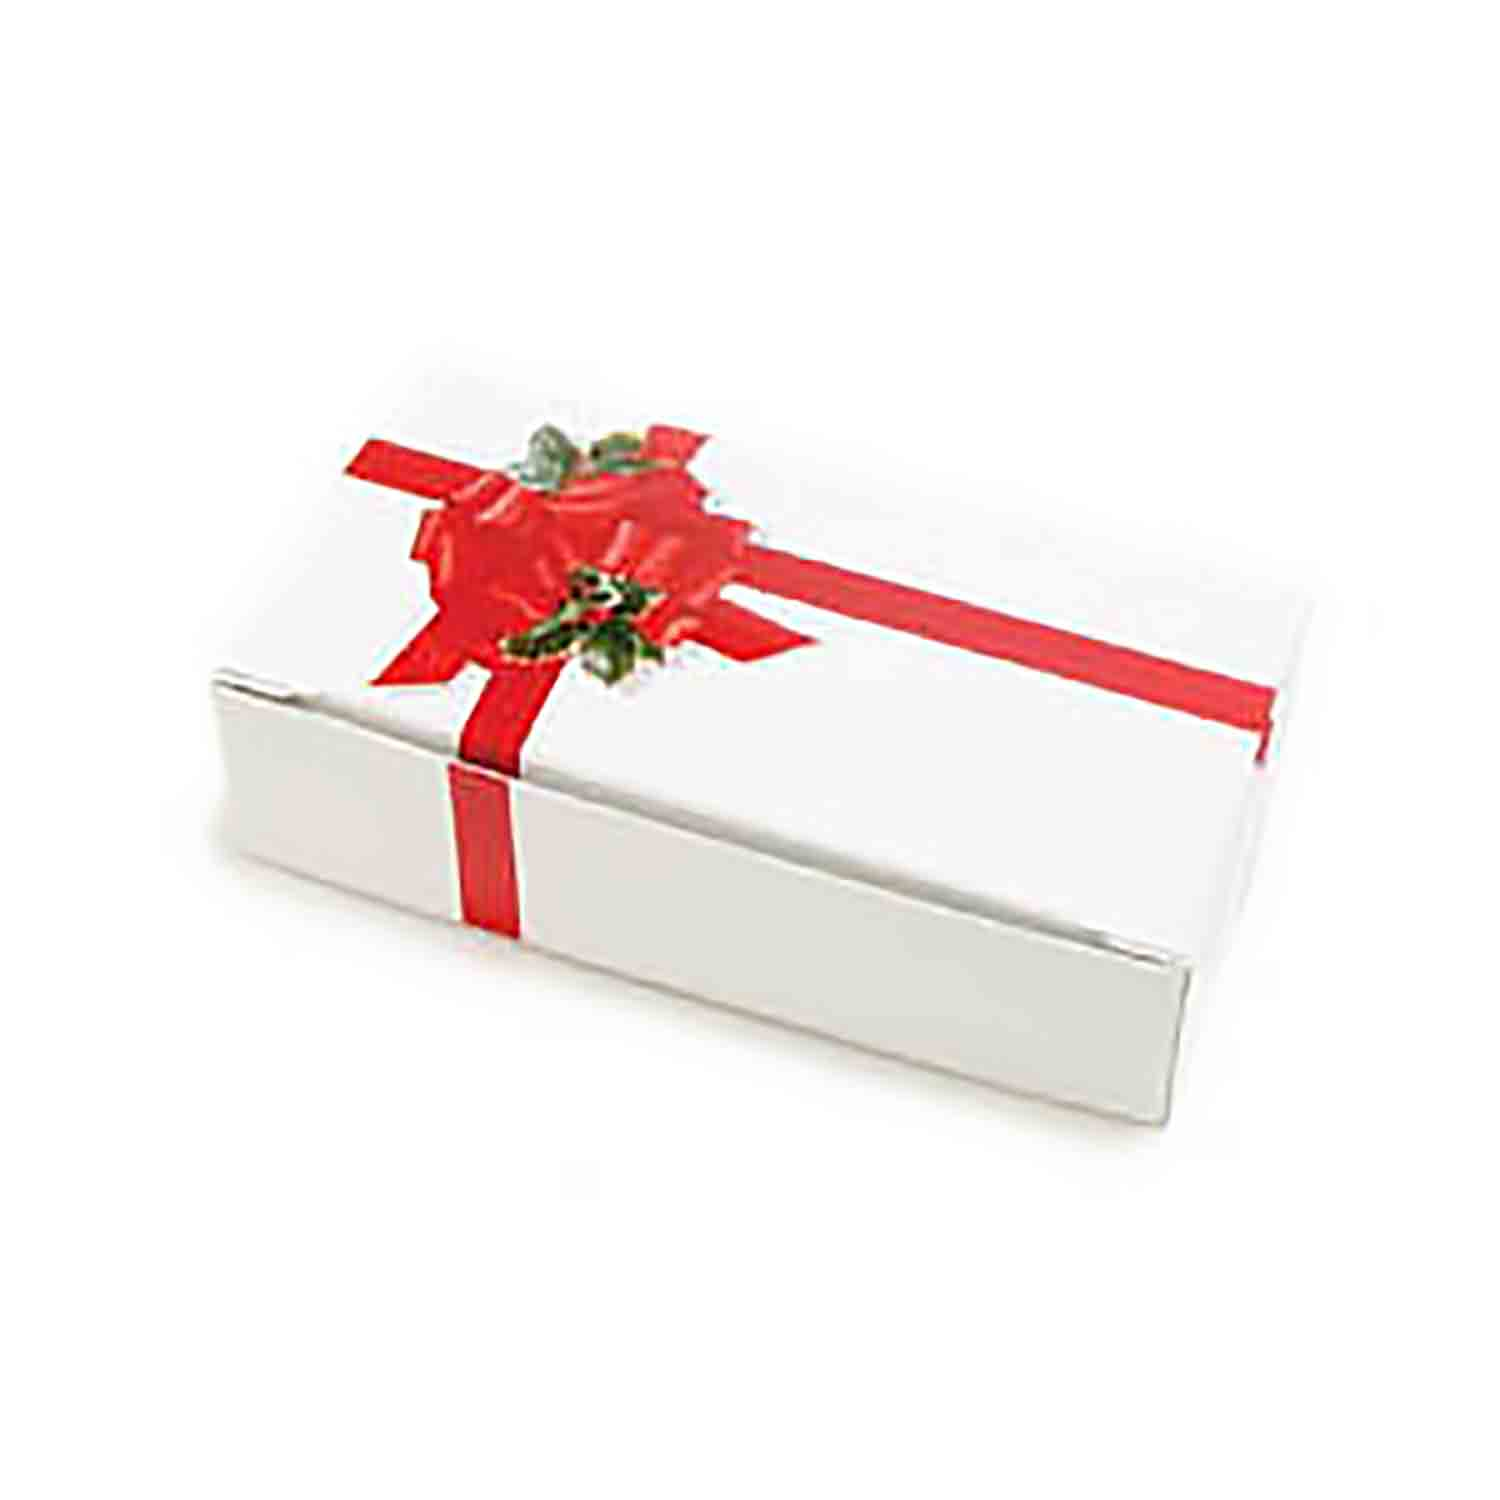 1/4 lb. Ribbon & Holly Candy Box